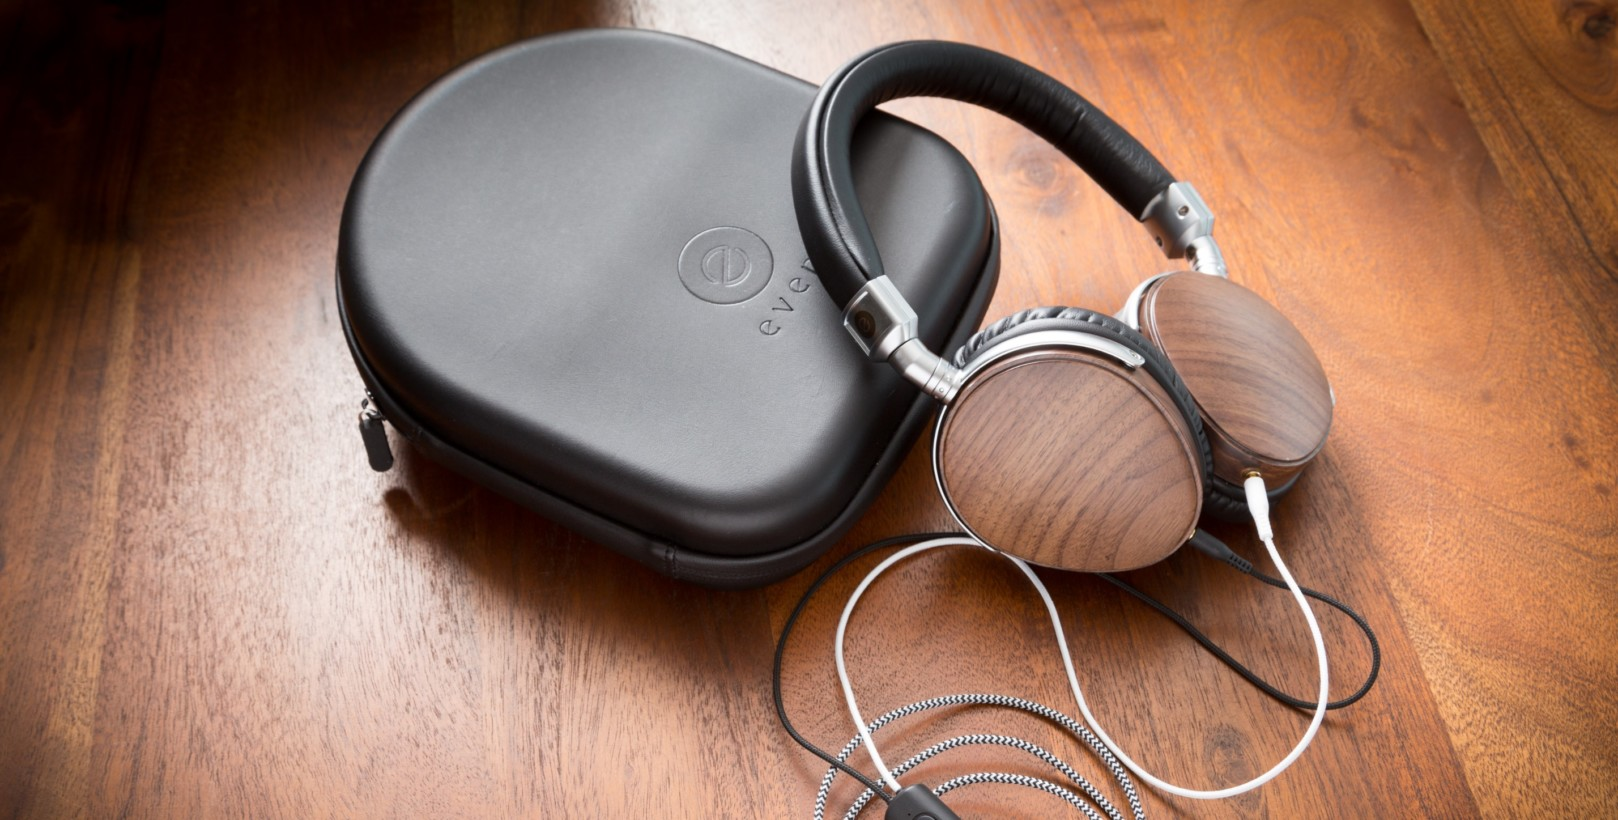 evens earprint h1 headphones make you realize how bad your hearing is